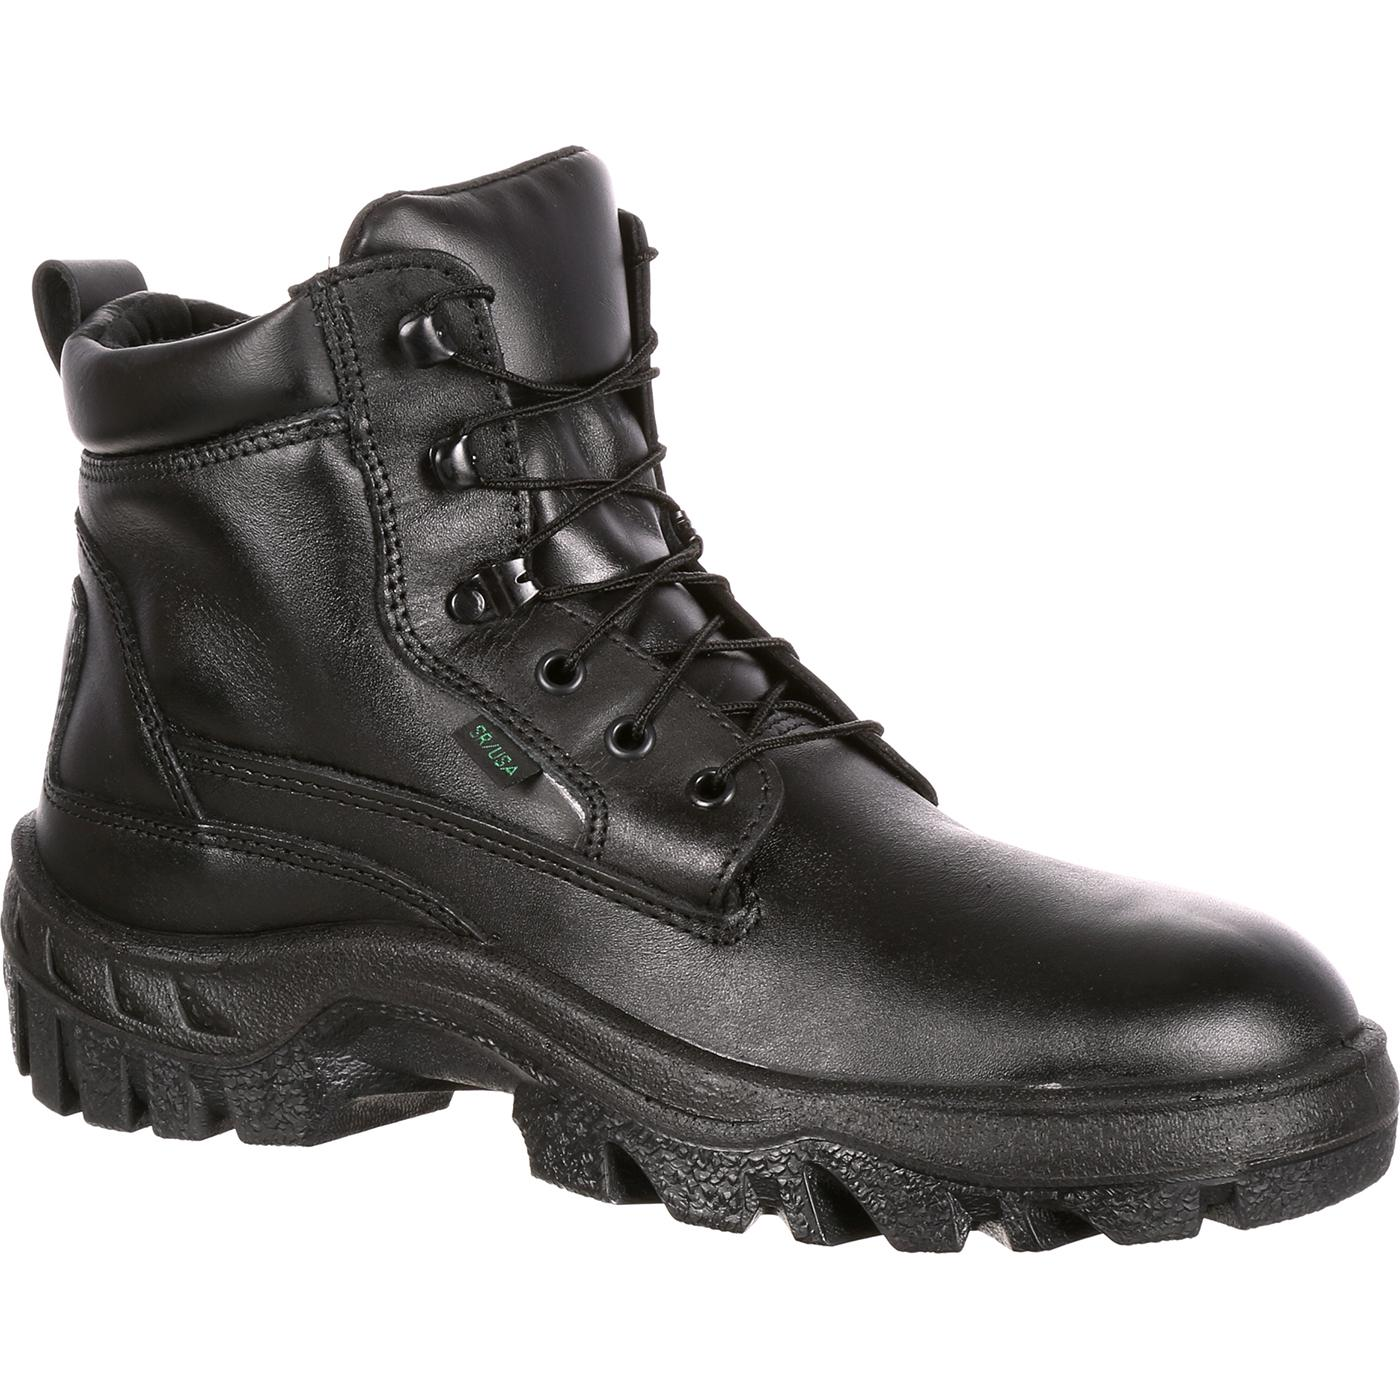 Rocky Tmc Postal Approved Black Duty Boots Fq0005019